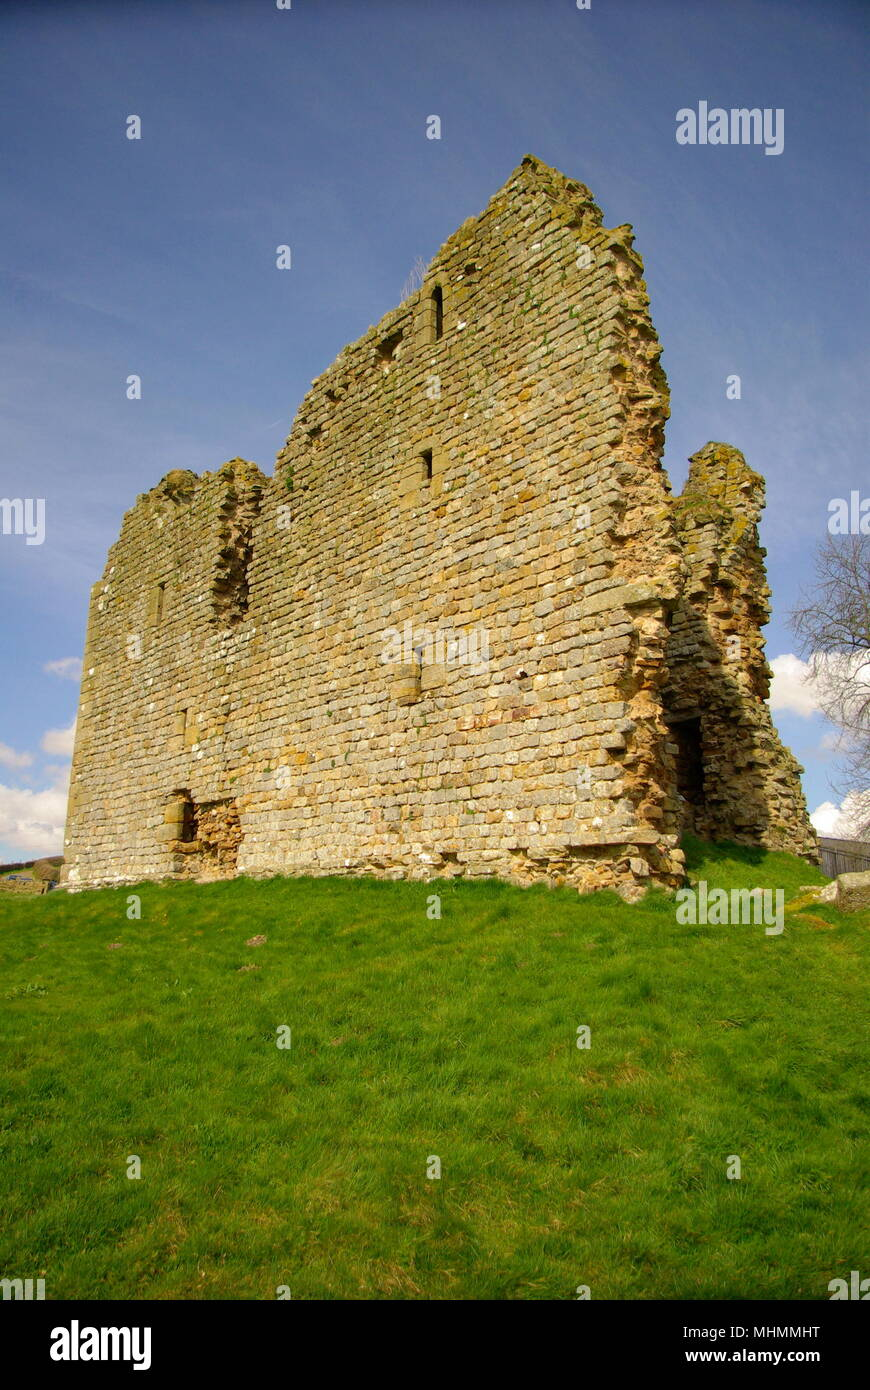 View of Thirlwall Castle, Greenhead, Northumberland.  The castle is an early 14th century stone building, built entirely of Roman masonry from Hadrian's Wall.       Date: April 2009 - Stock Image